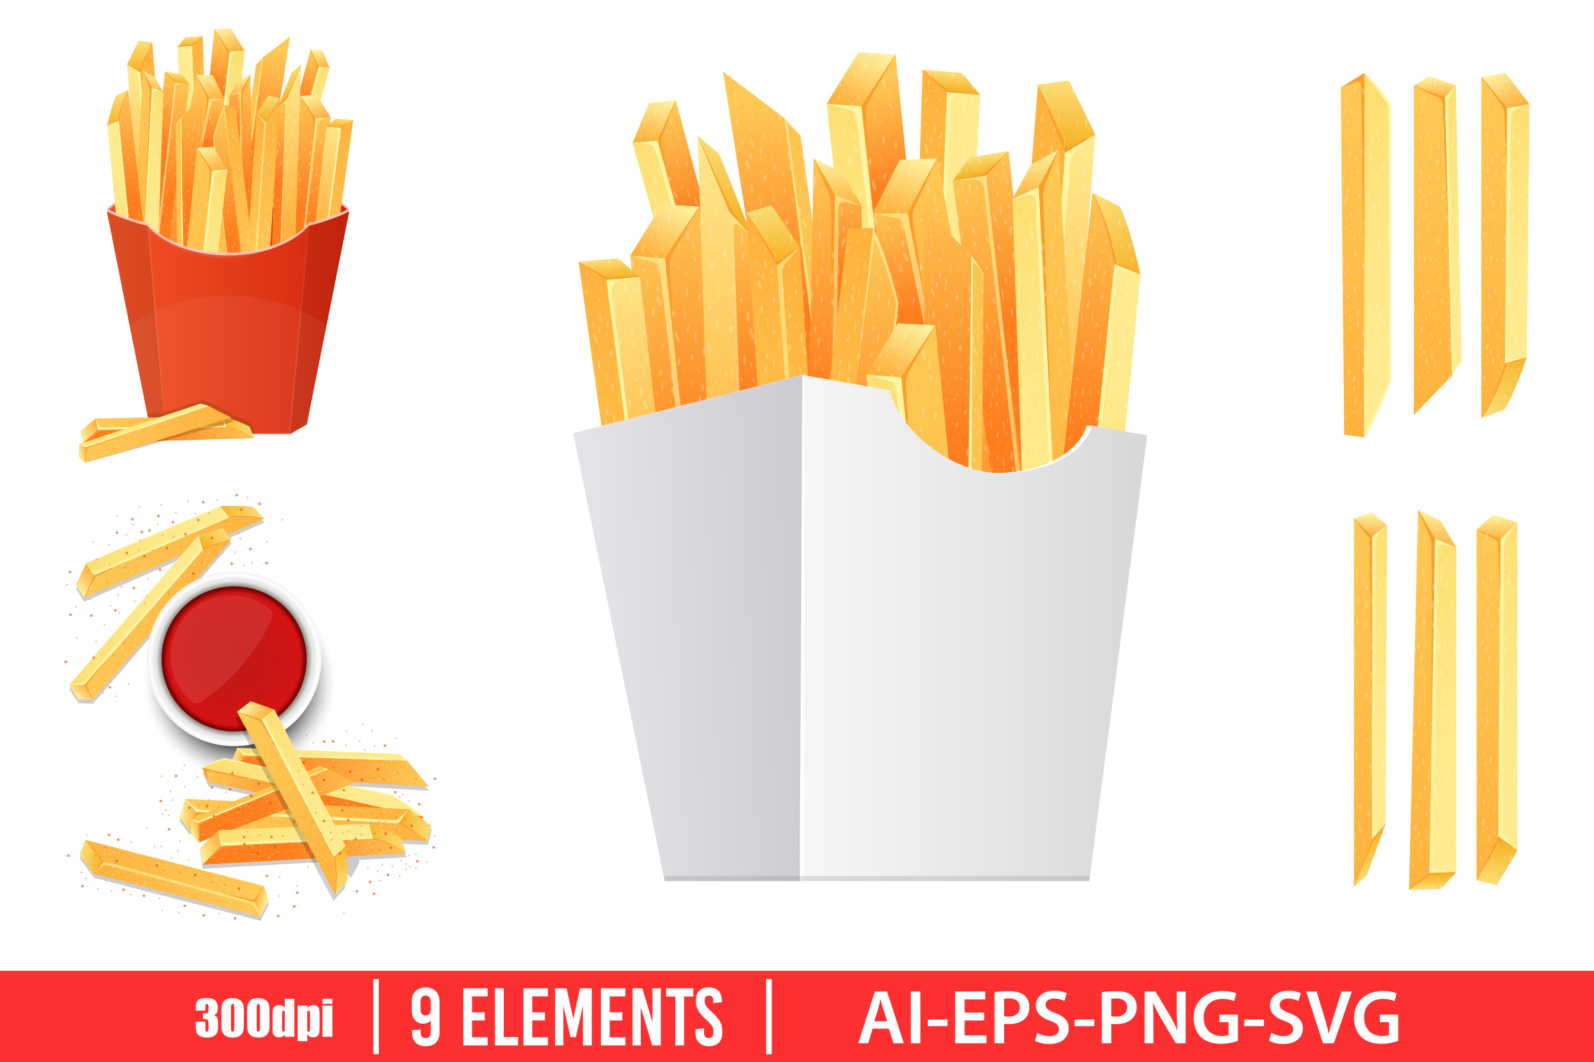 French fries clipart vector design illustration. French fries set. Vector Clipart Print - FRIES scaled -